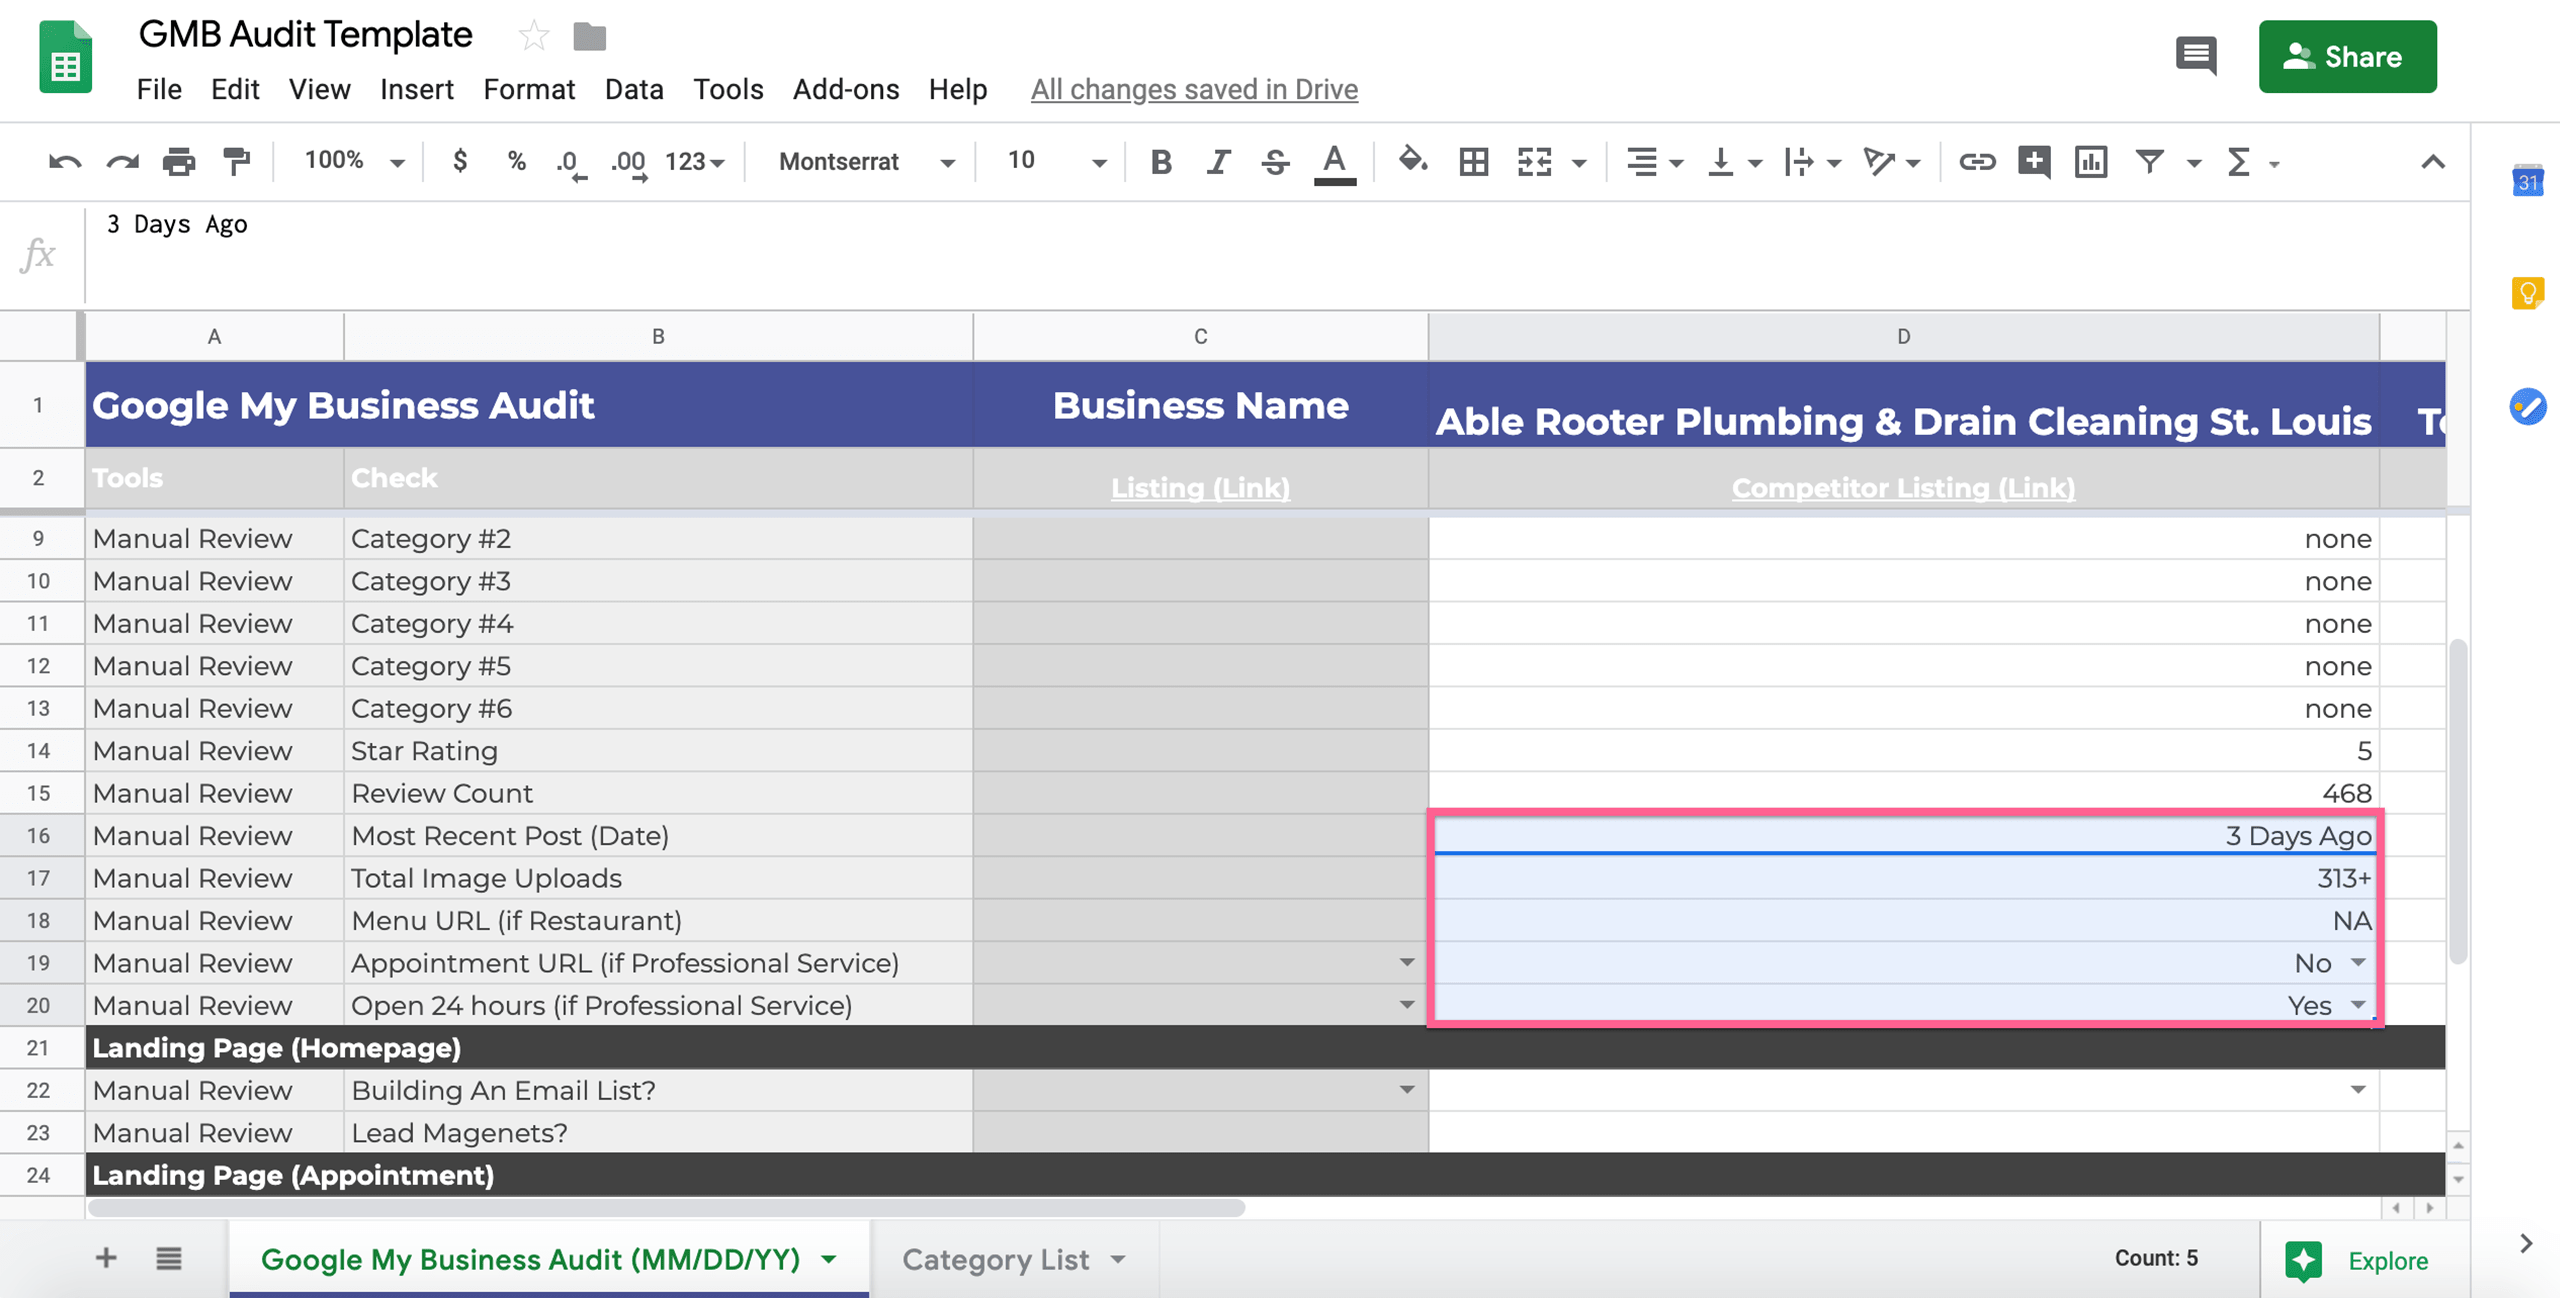 adding image uploads, post date, and business hours to the audit template